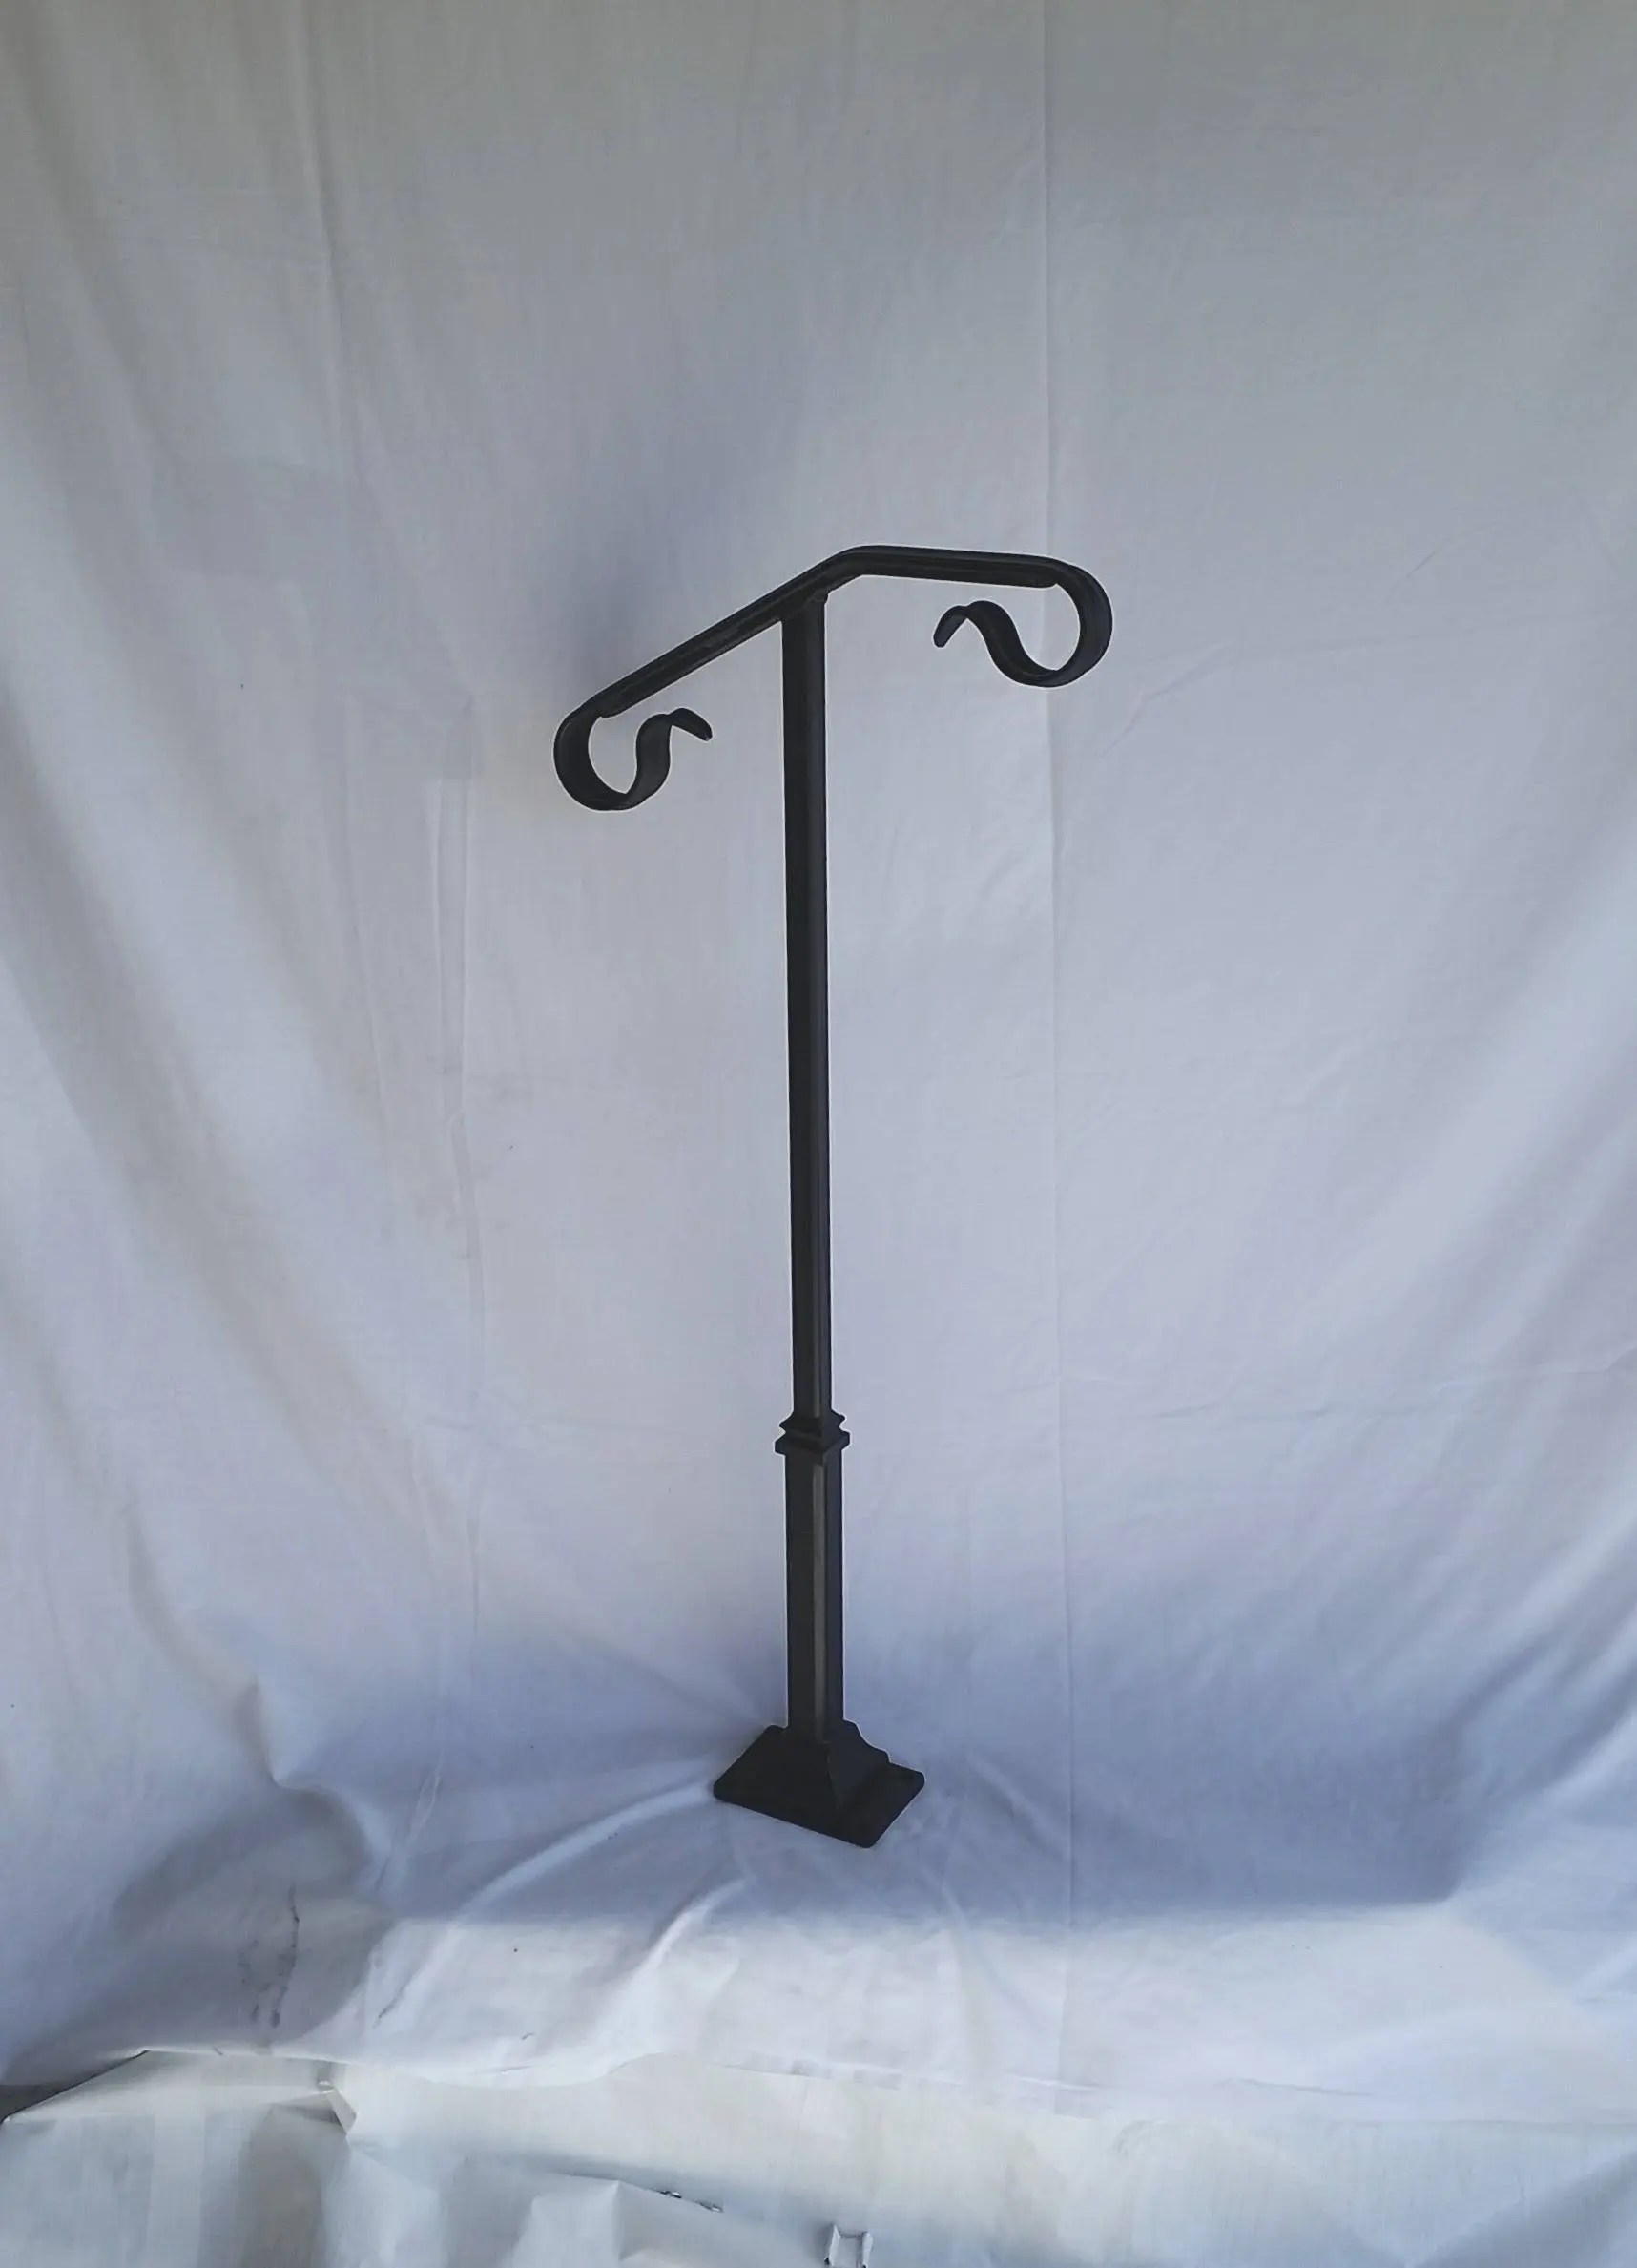 Single Post Hand Rail 1 or 2 step railing for stairs steel handrail with hardware Super Sturdy